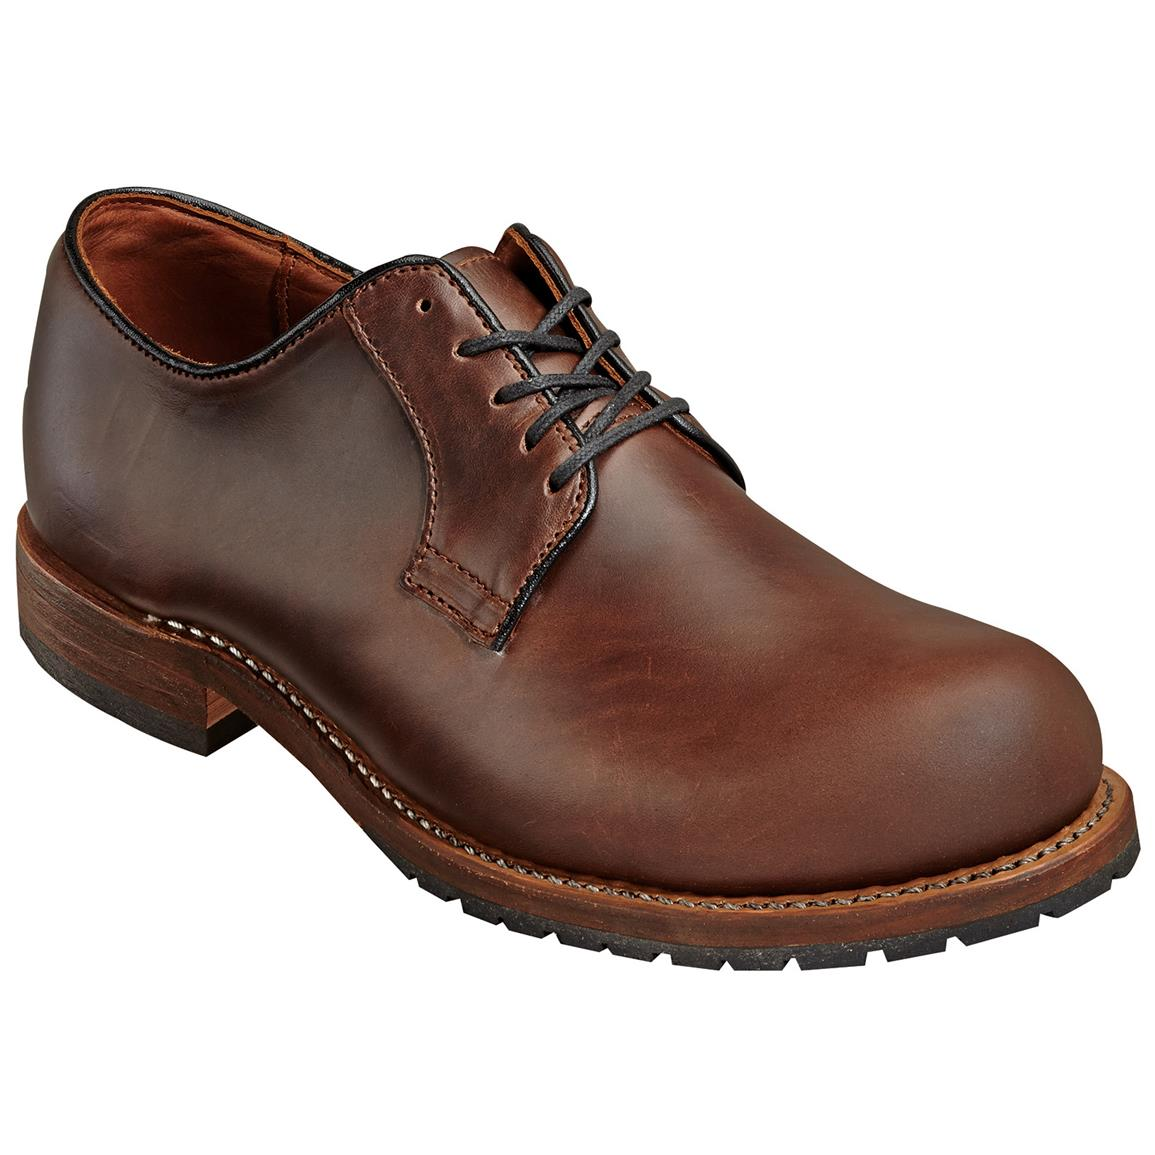 Wood N' Stream American Classic Oxford Shoes